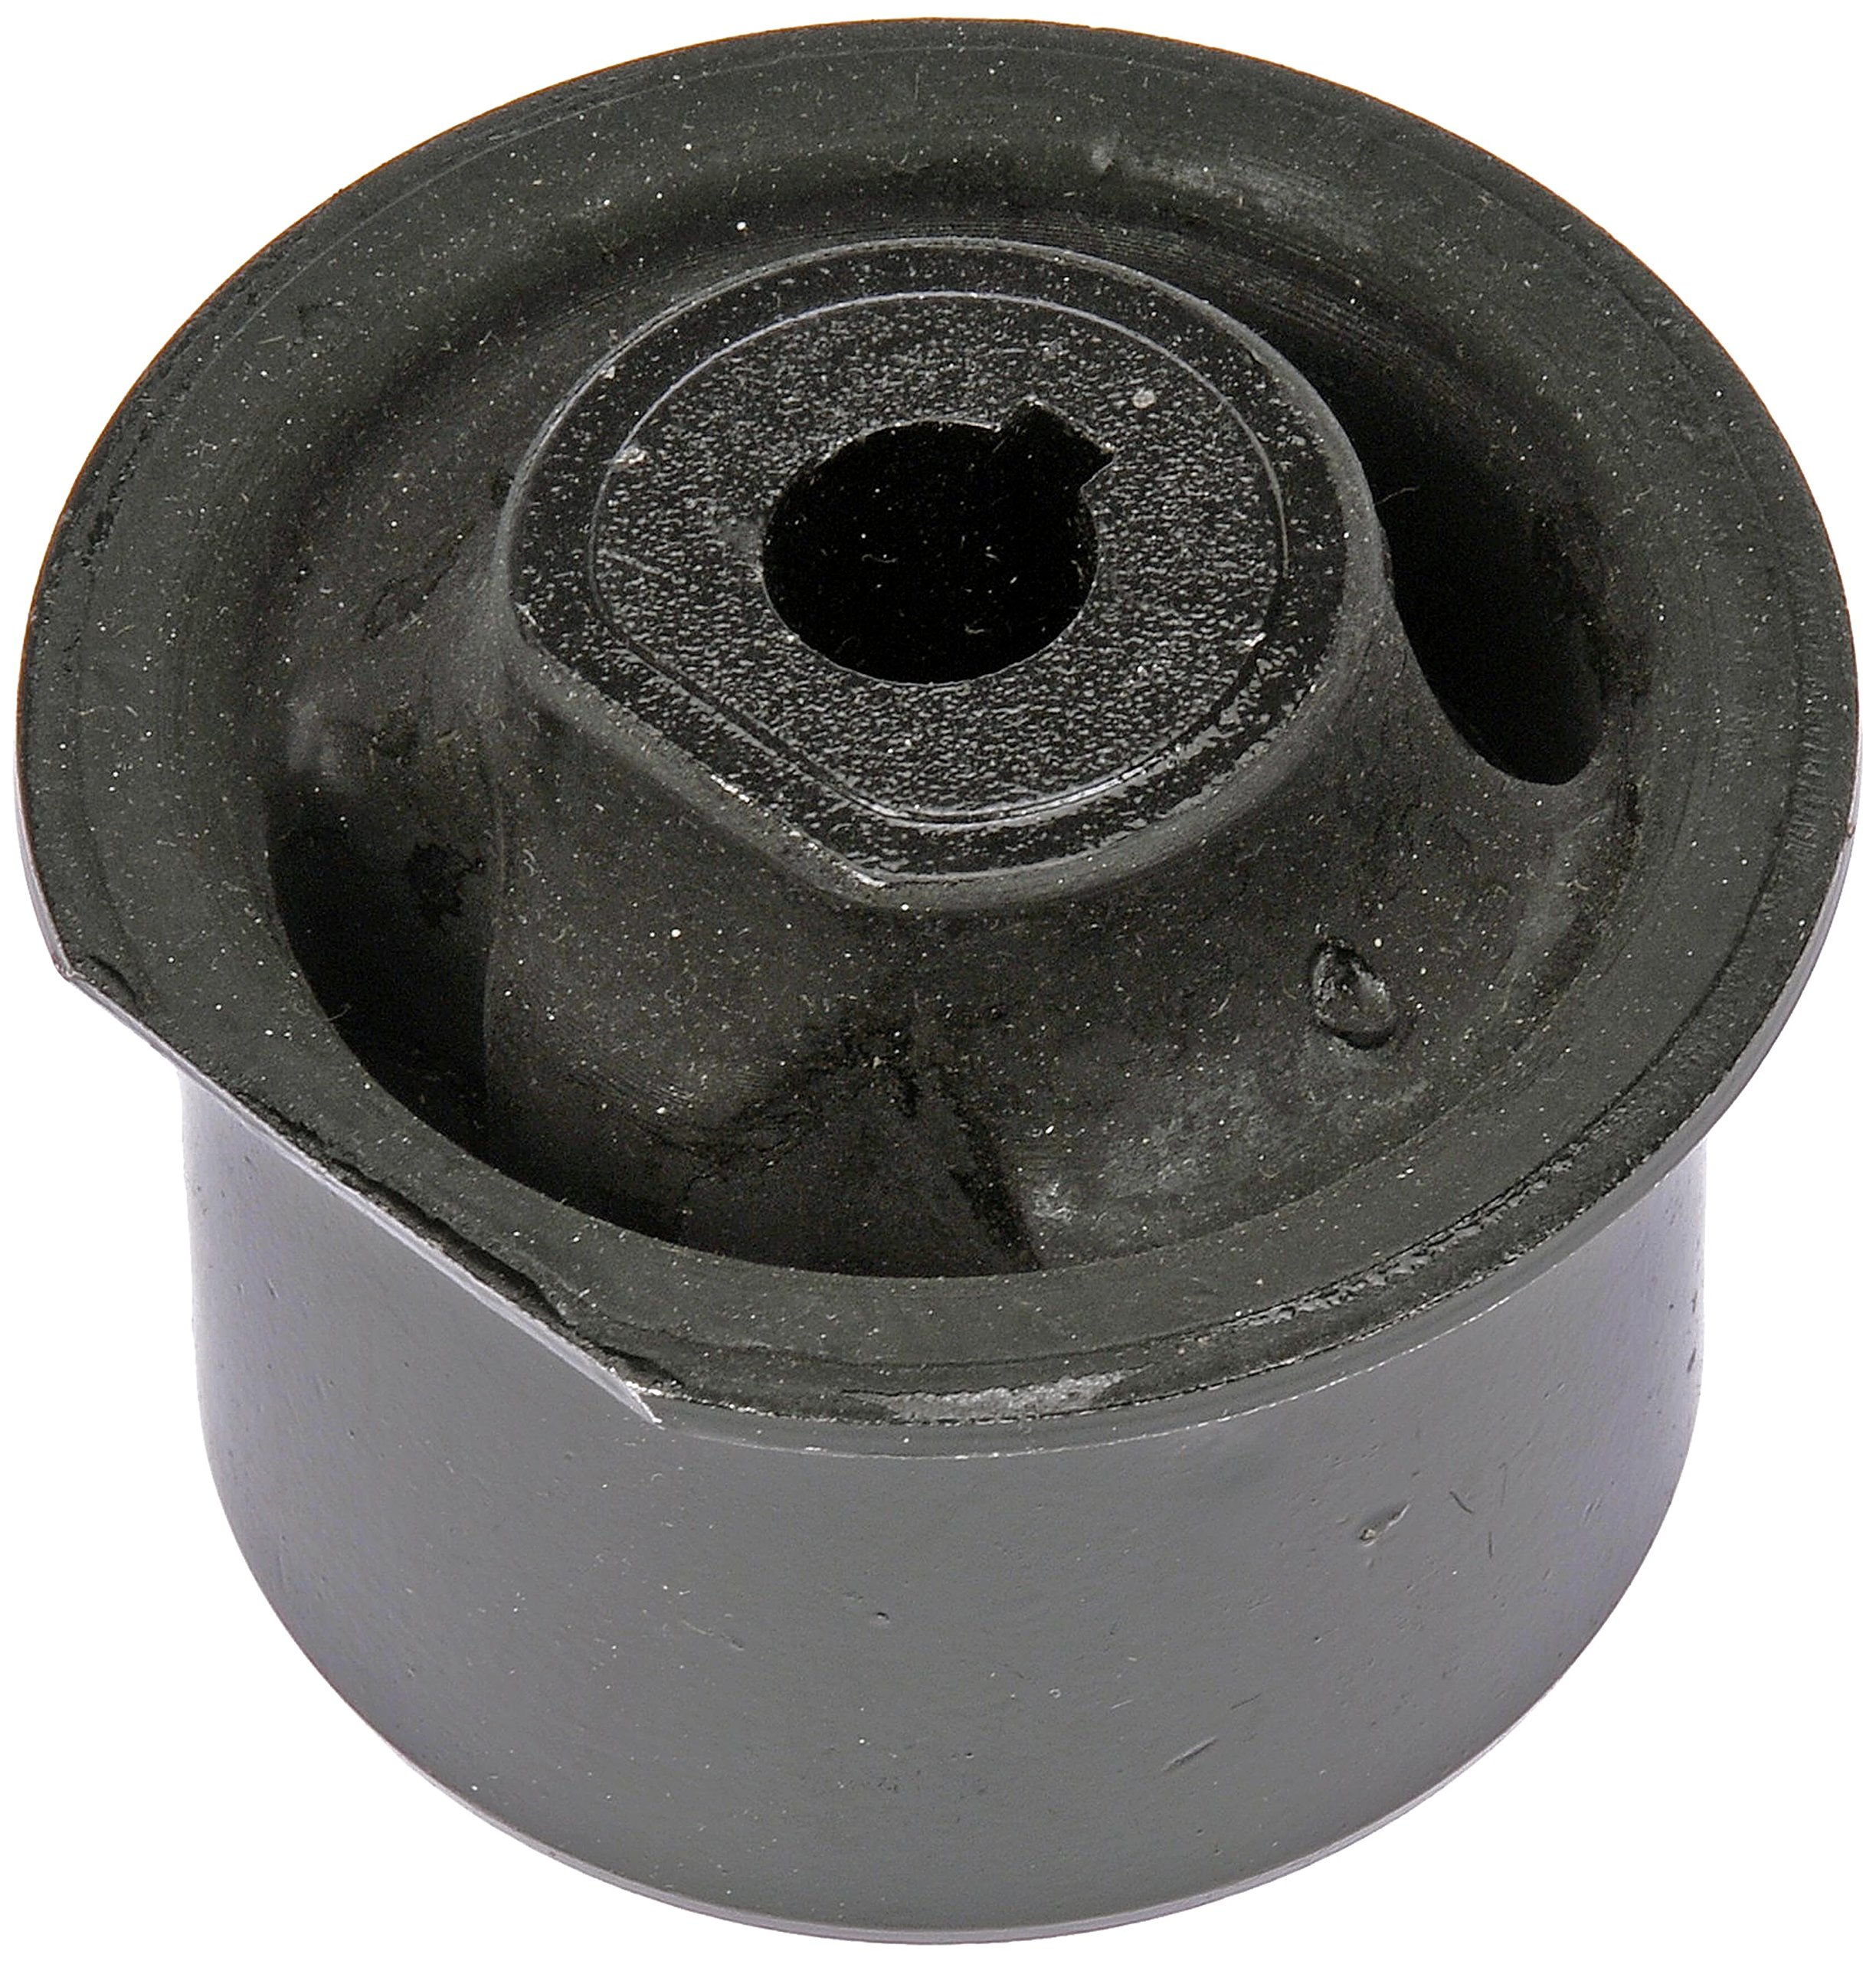 Dorman 905-405 Differential Mount Bushing